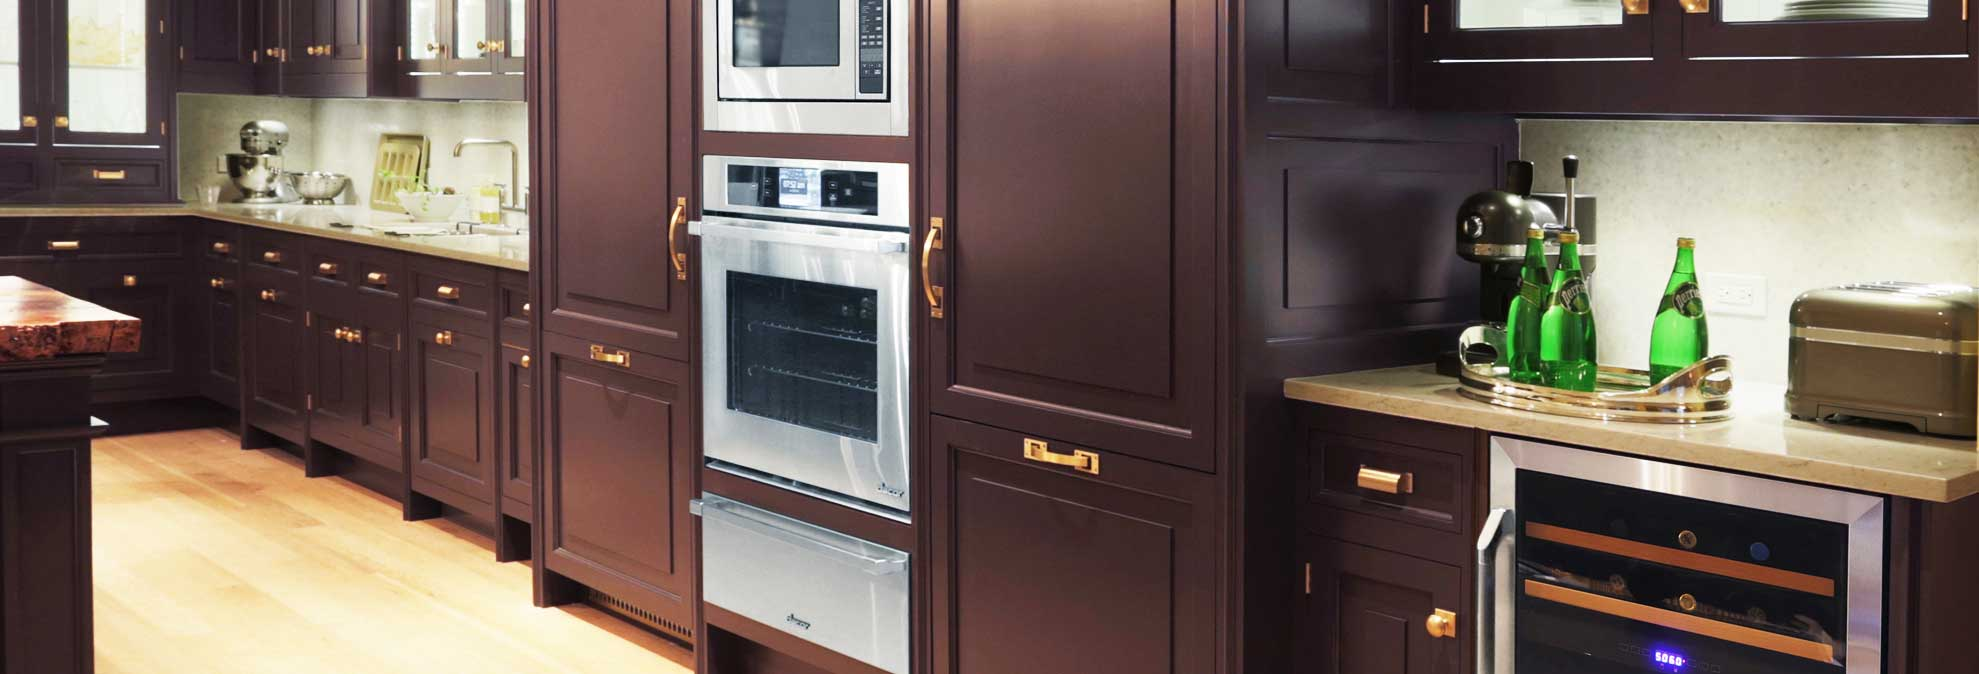 best kitchen cabinet buying guide consumer reports rh consumerreports org kitchen cabinet pictures photo gallery kitchen cabinet pictures photo gallery